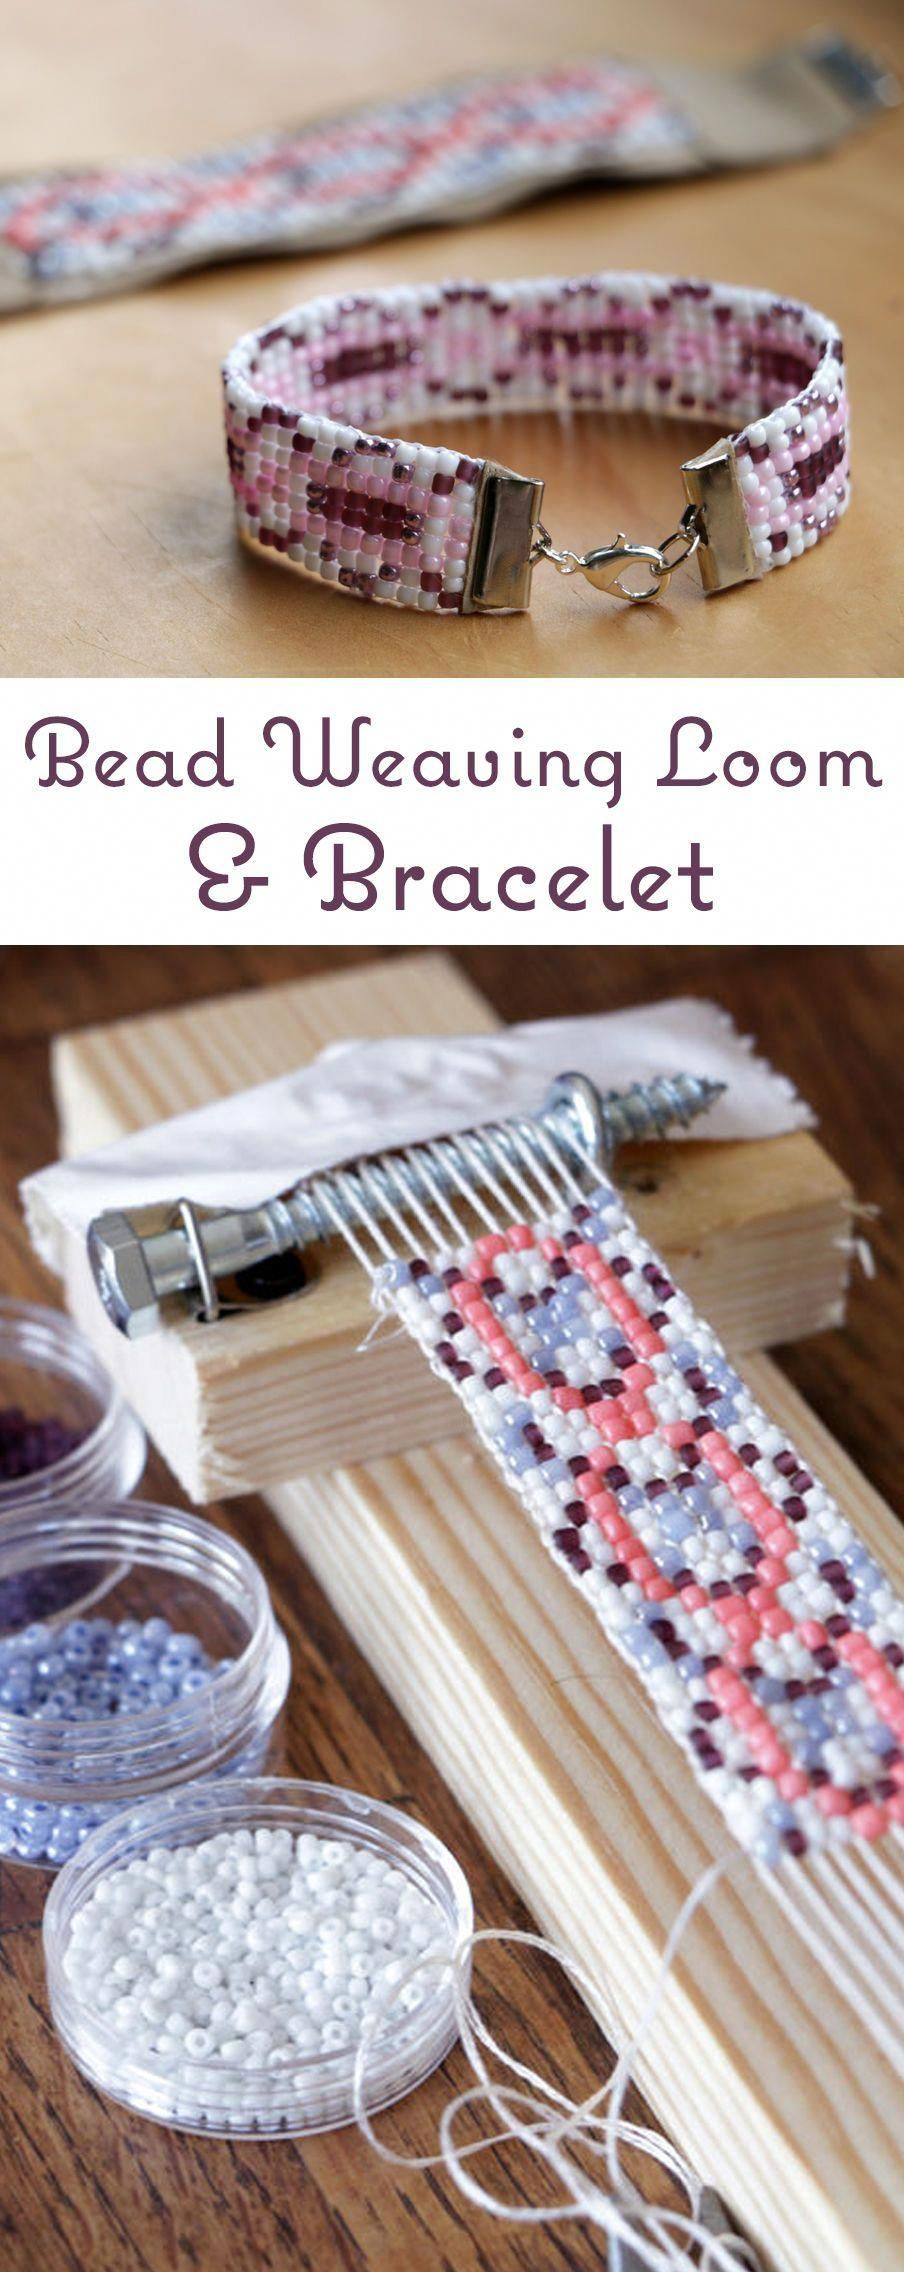 How to make a really simple bead weaving loom out of